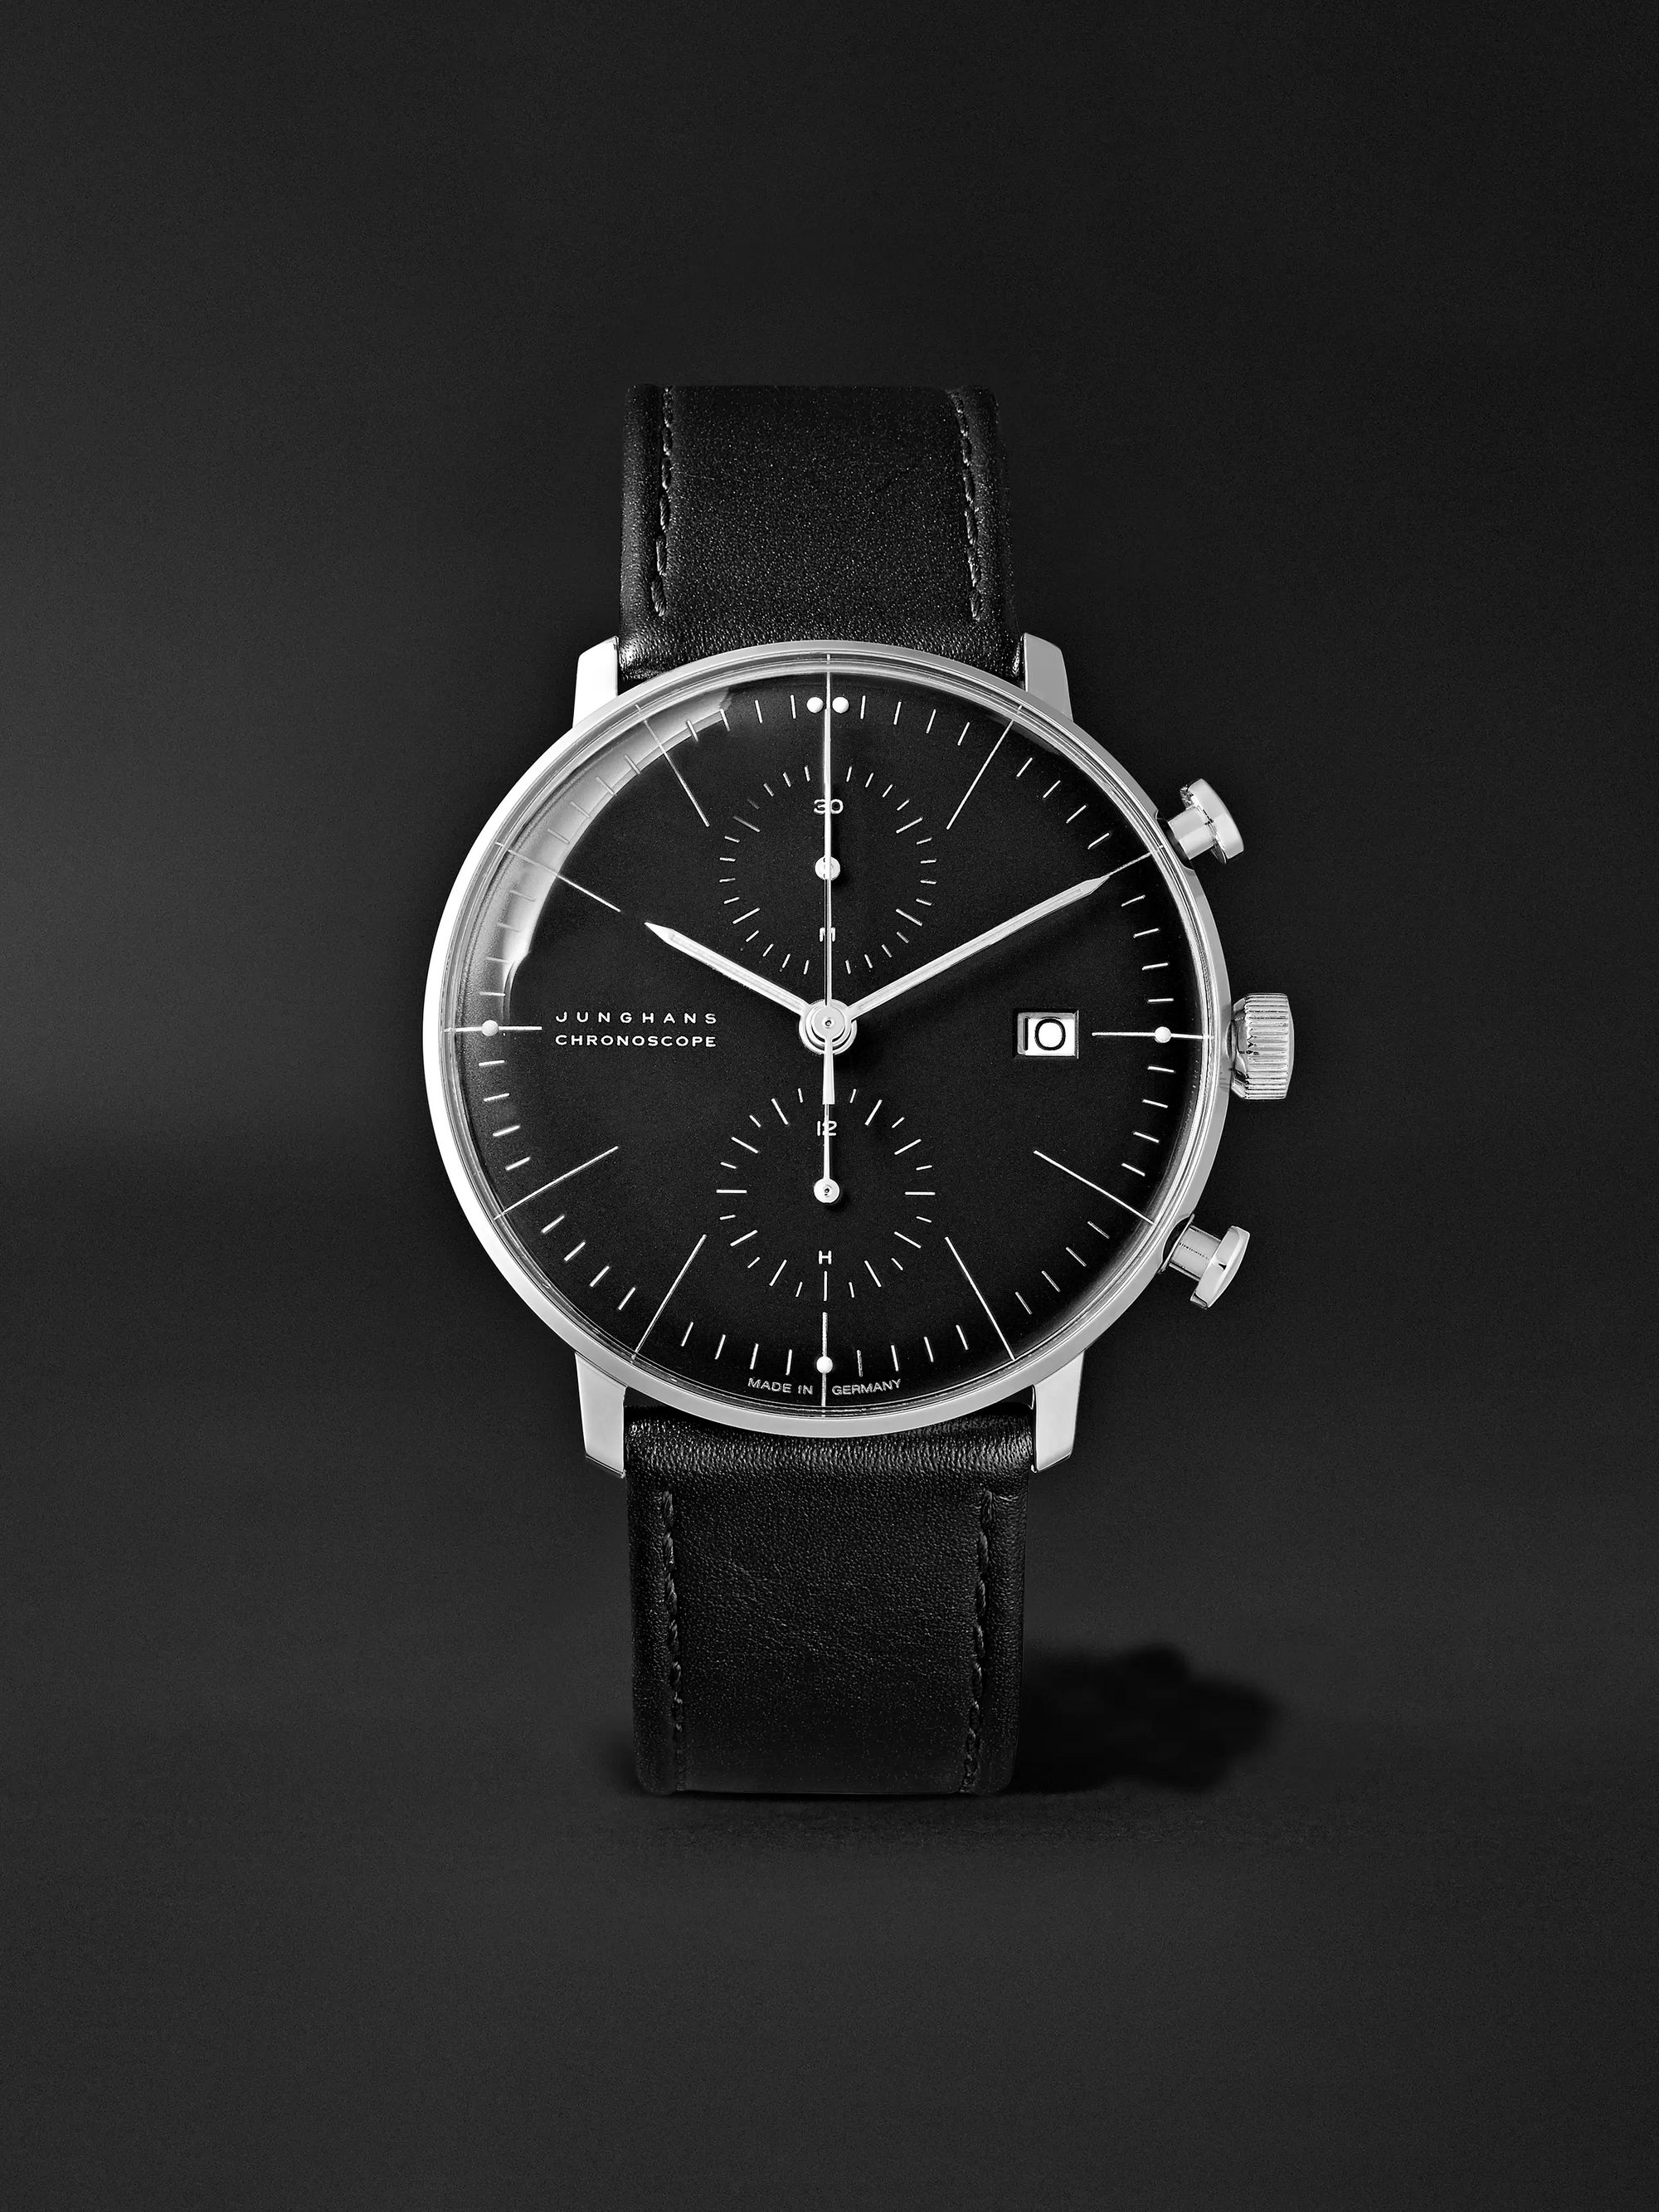 Junghans Max Bill Chronoscope 40mm Stainless Steel and Leather Watch, Ref. No. 027/4600.04